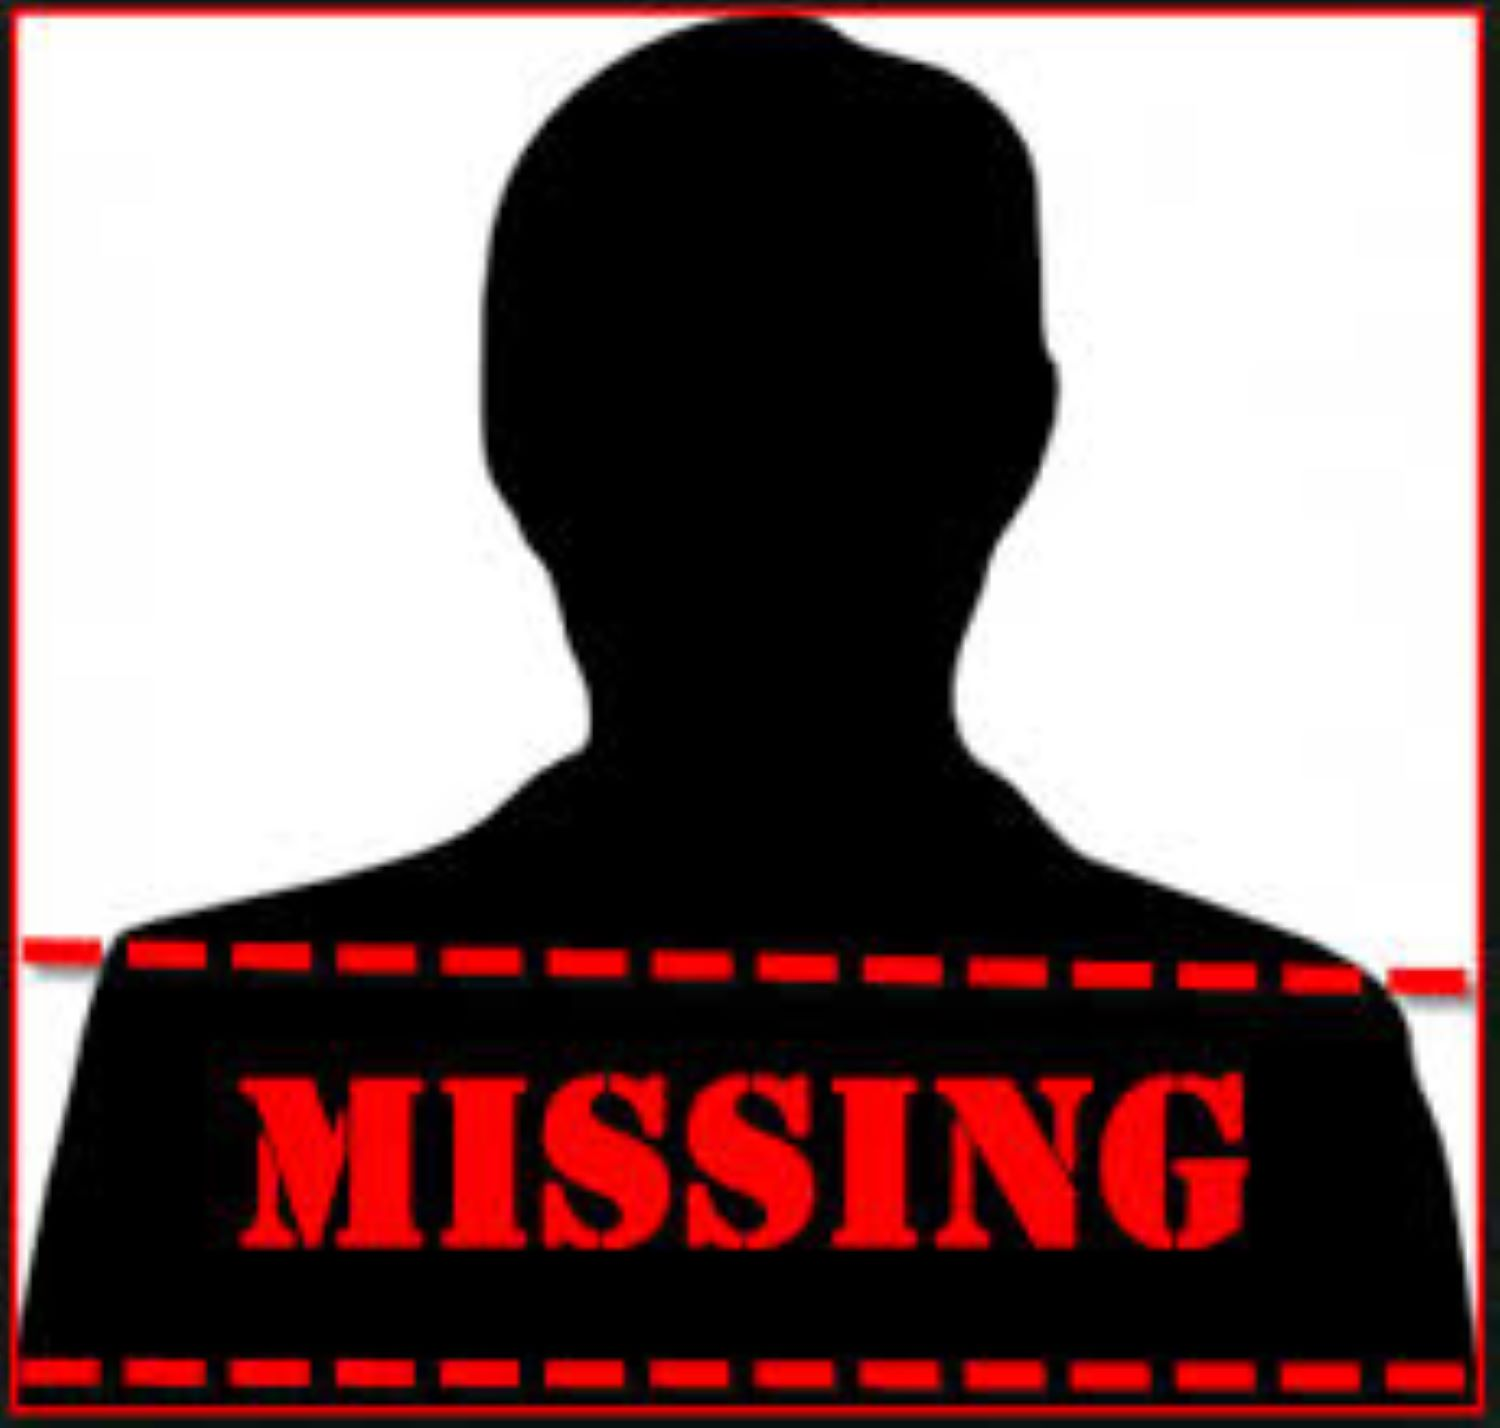 20 year old 400 level student declared missing in Ondo church